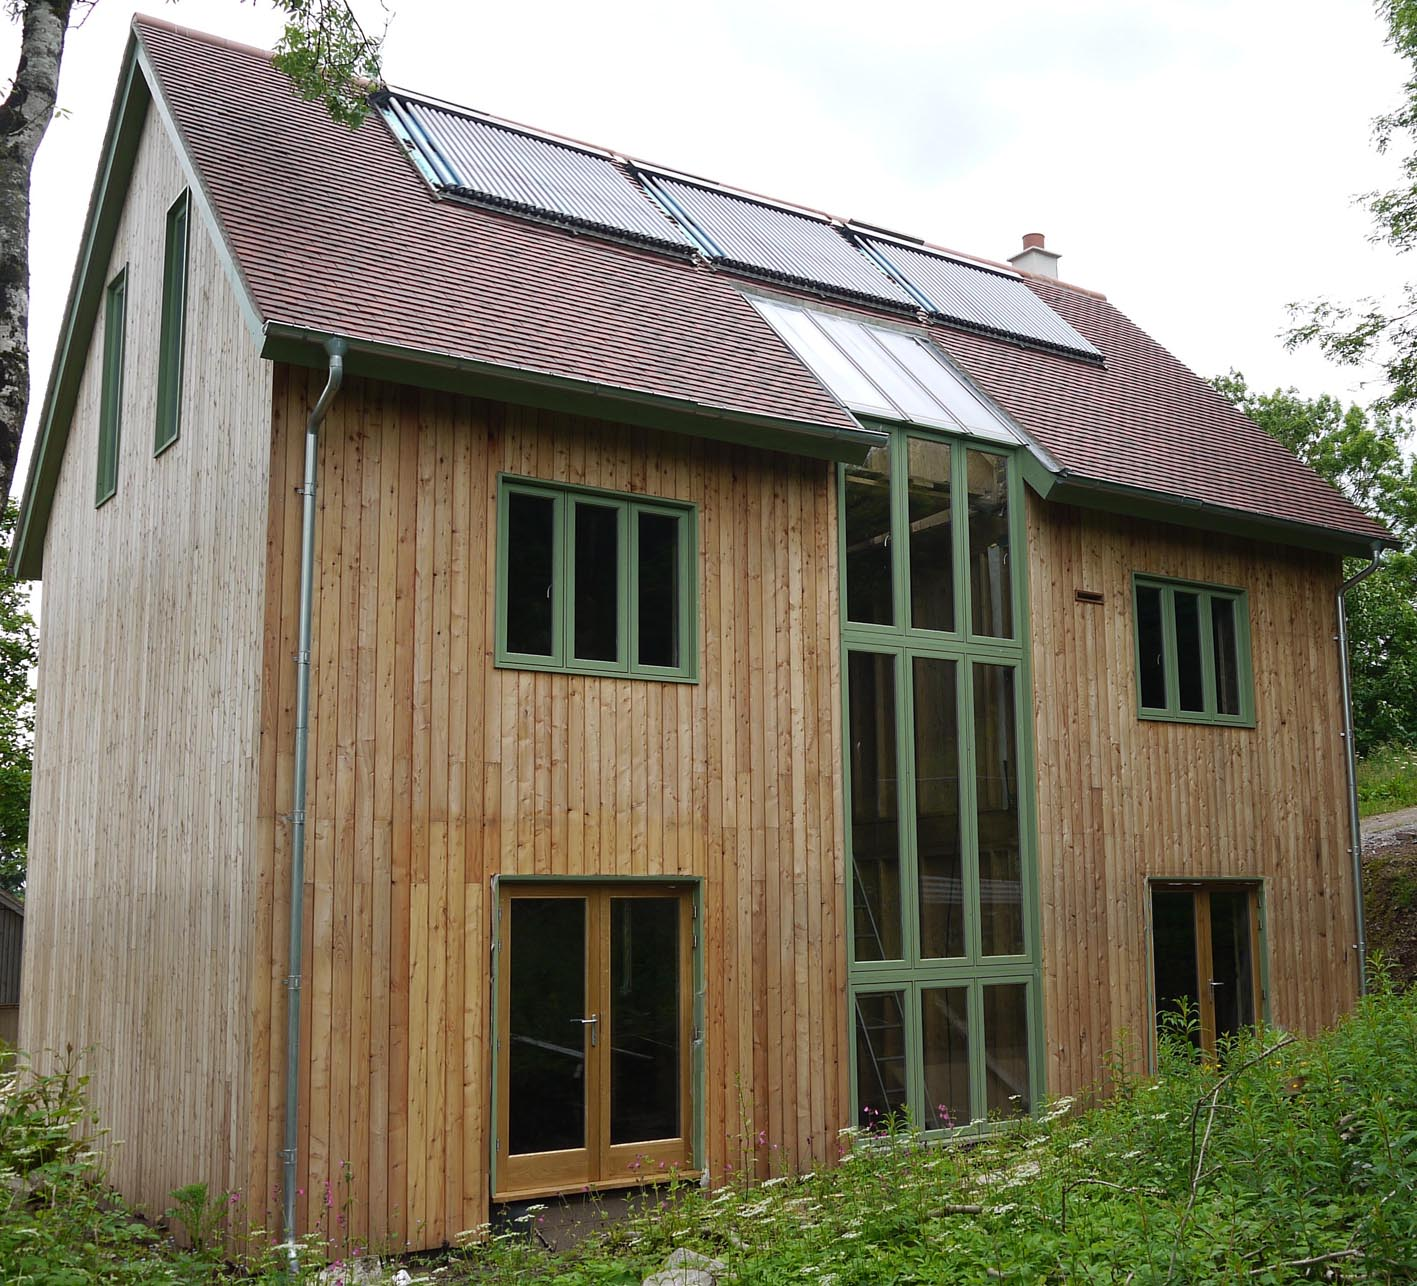 Self build shepton mallet mjw architects for Small new build homes